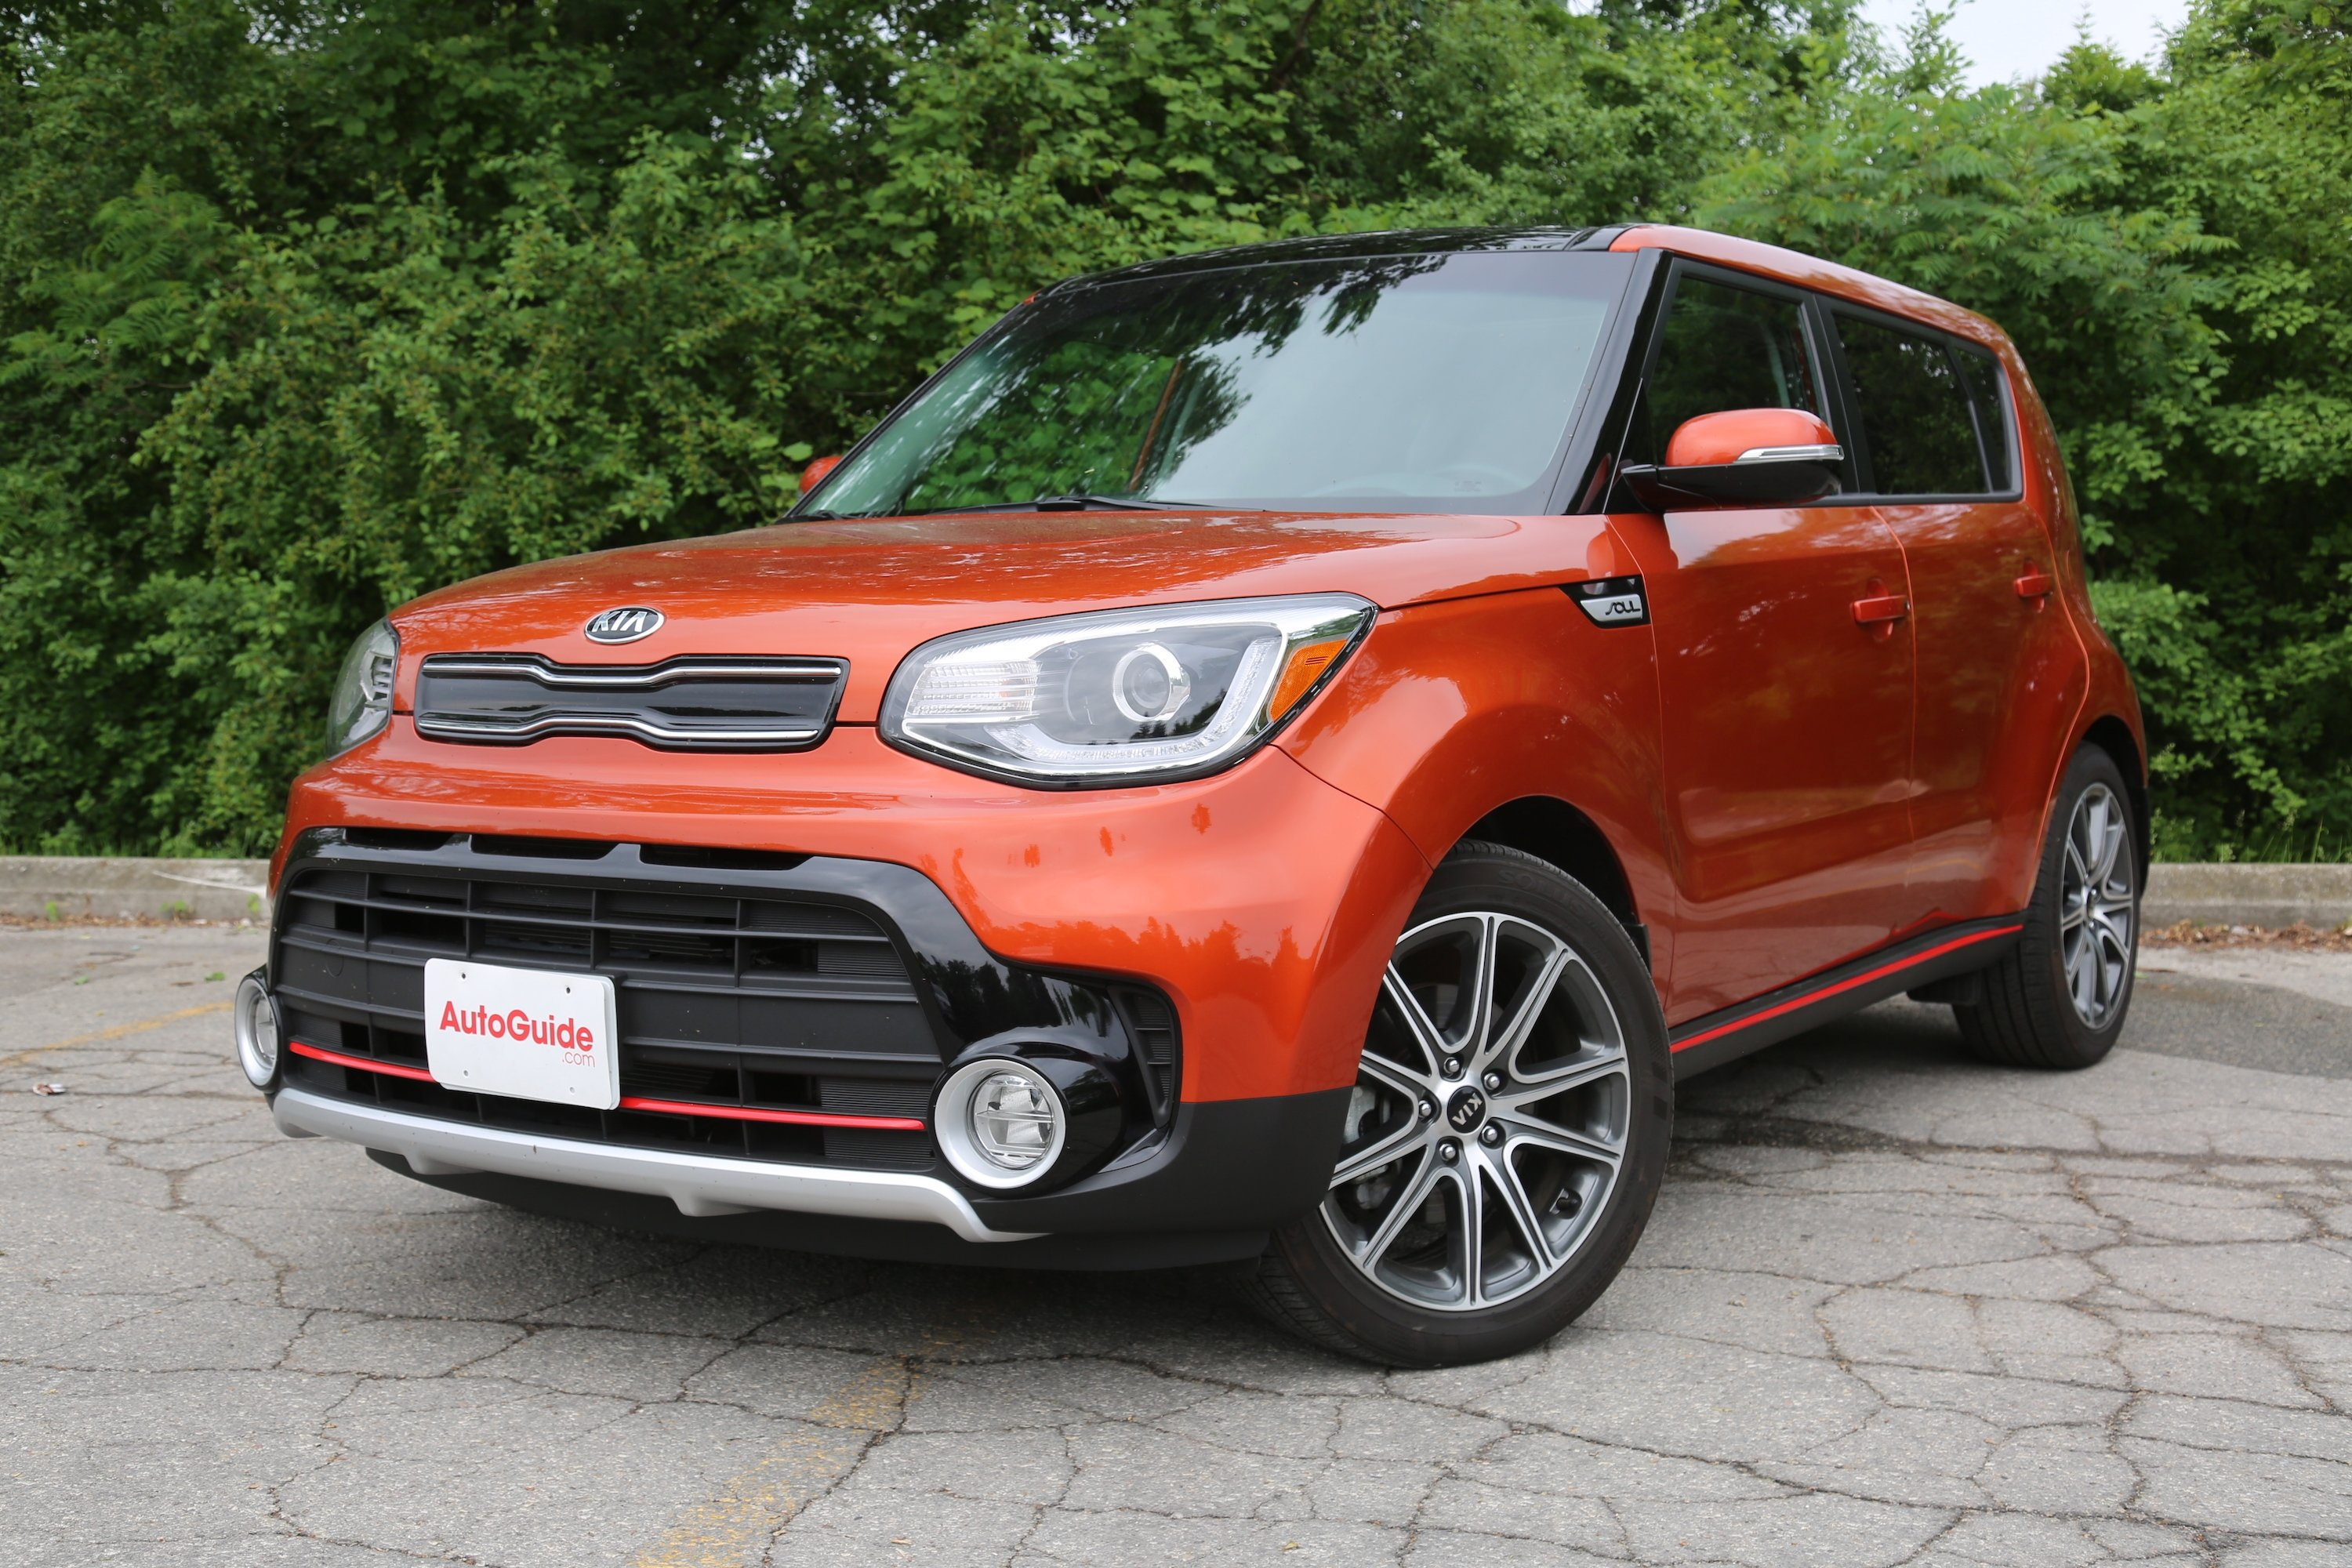 Kia Soul Accessories >> 2018 Kia Soul: 5 Things It Nails and 5 Things It Needs to ...